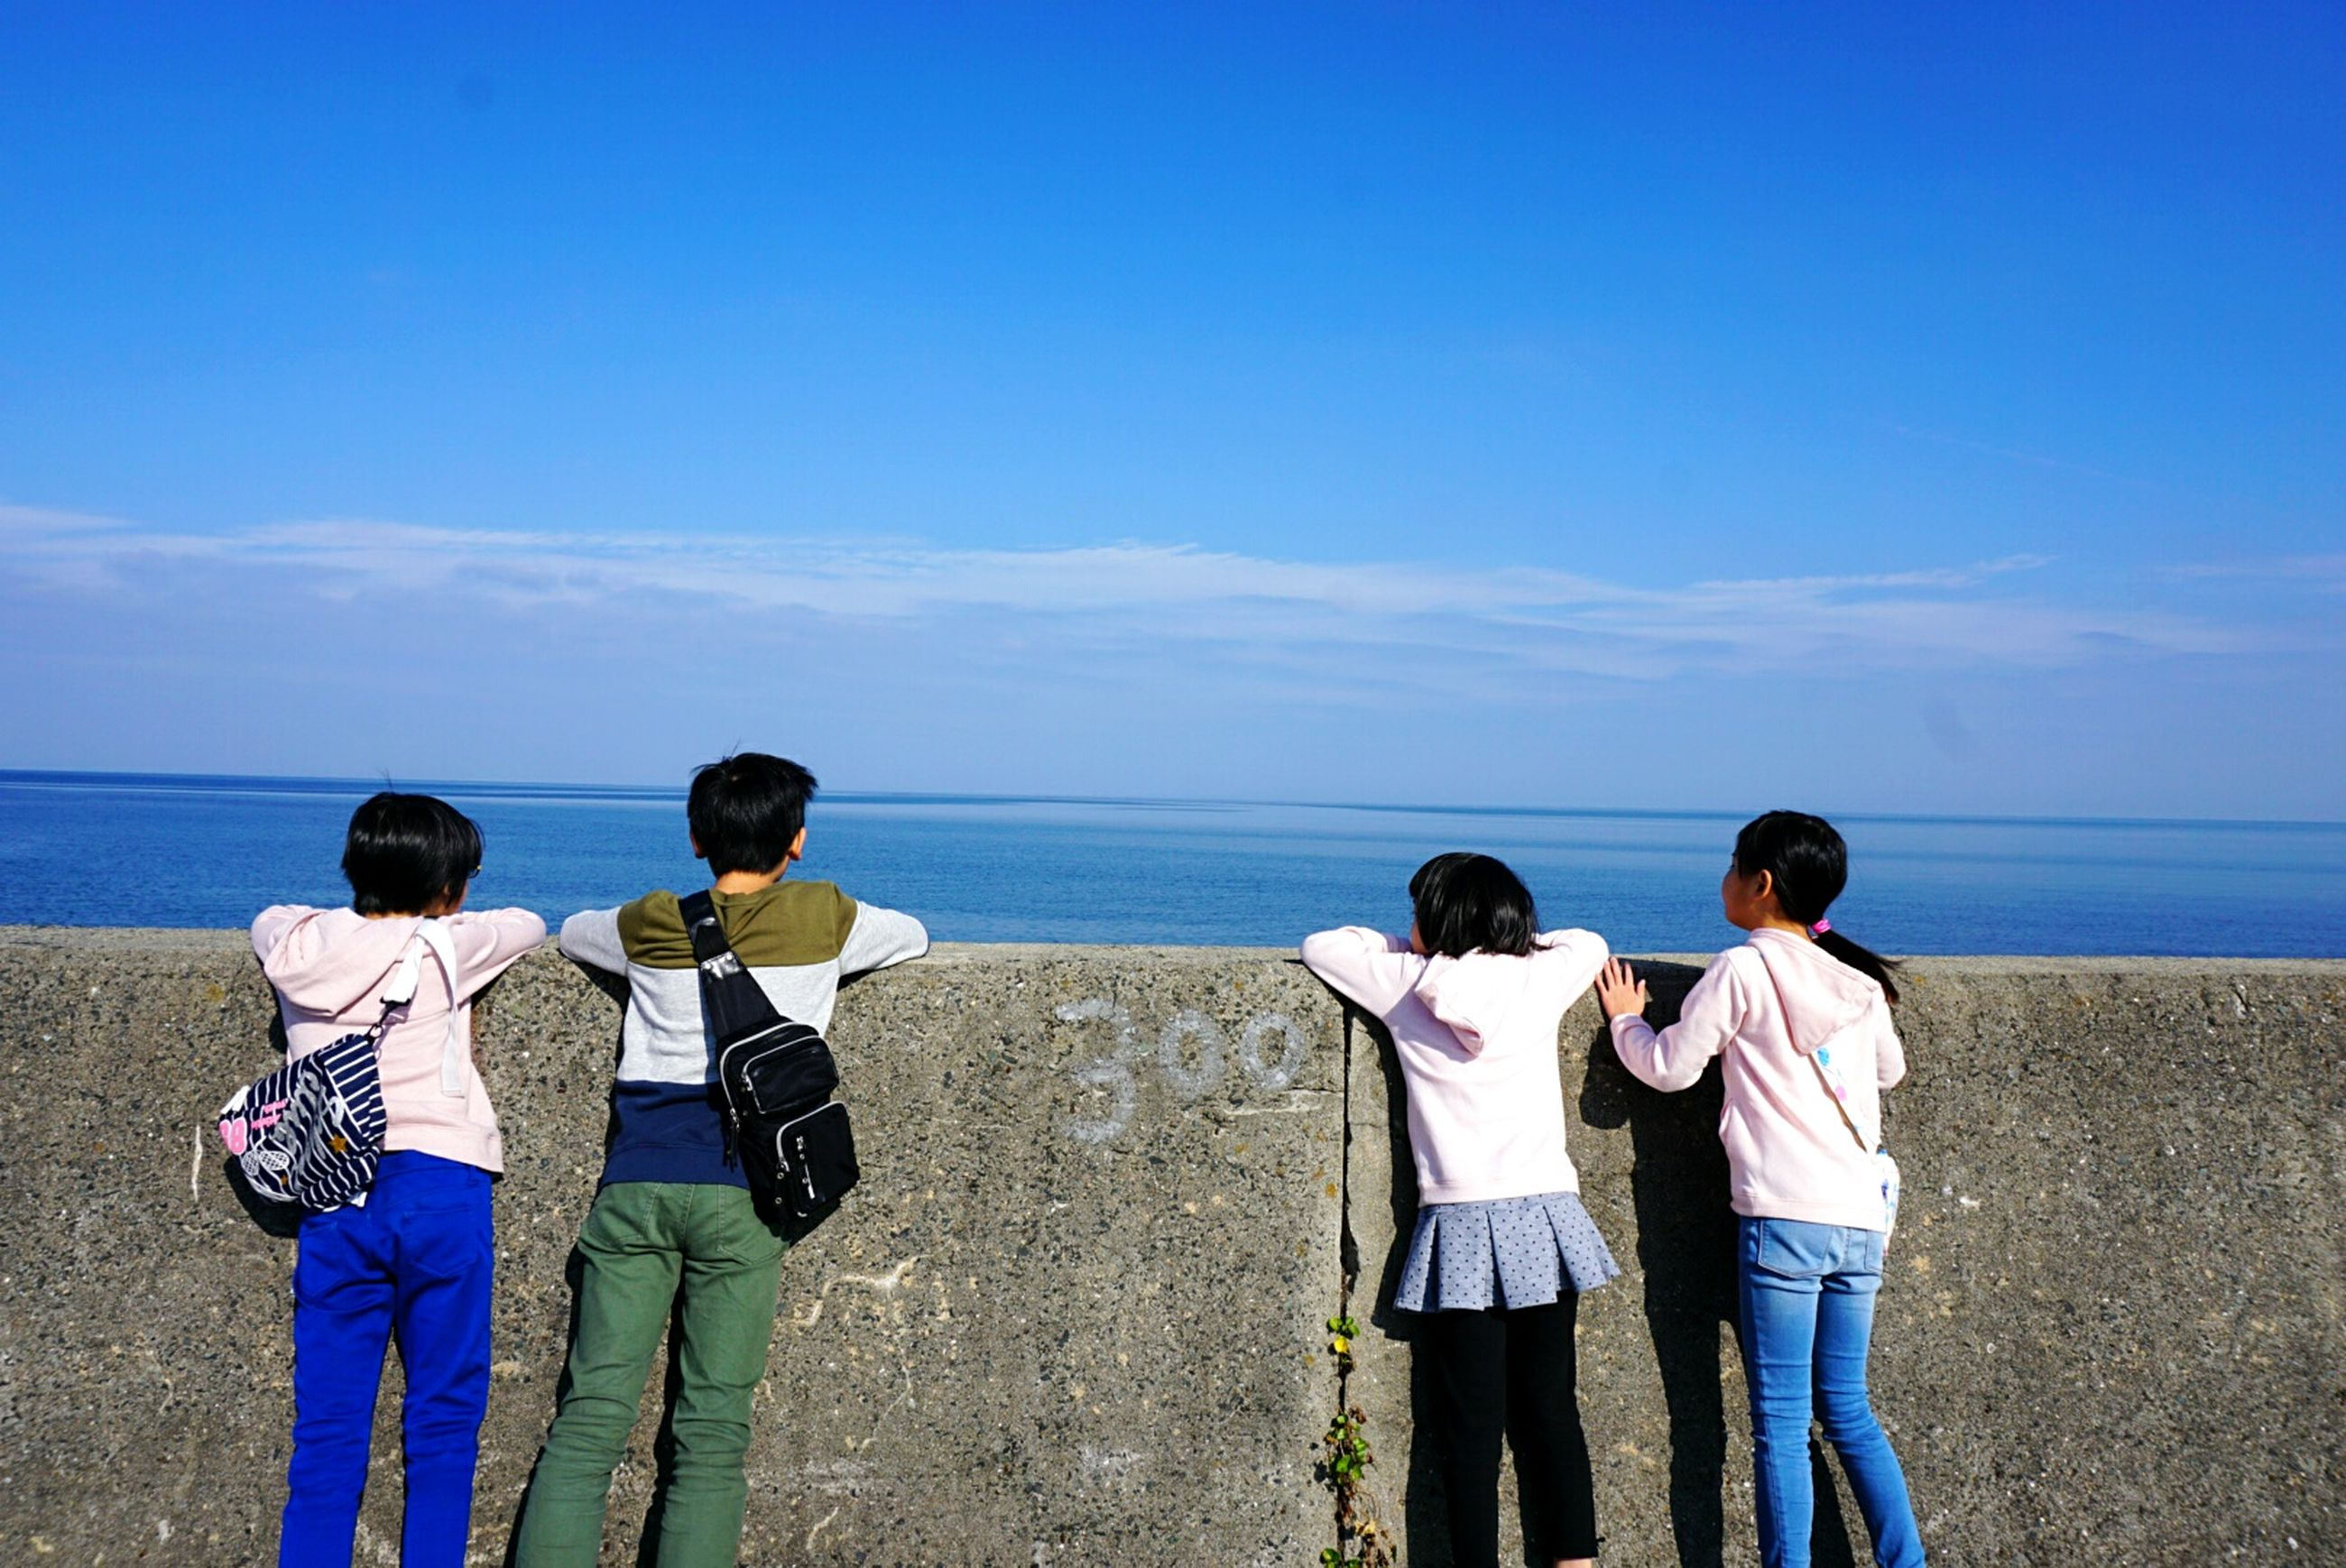 sea, horizon over water, blue, friendship, beach, rear view, sky, teenager, water, togetherness, outdoors, standing, scenics, bonding, beauty in nature, real people, people, day, men, musical instrument, nature, adult